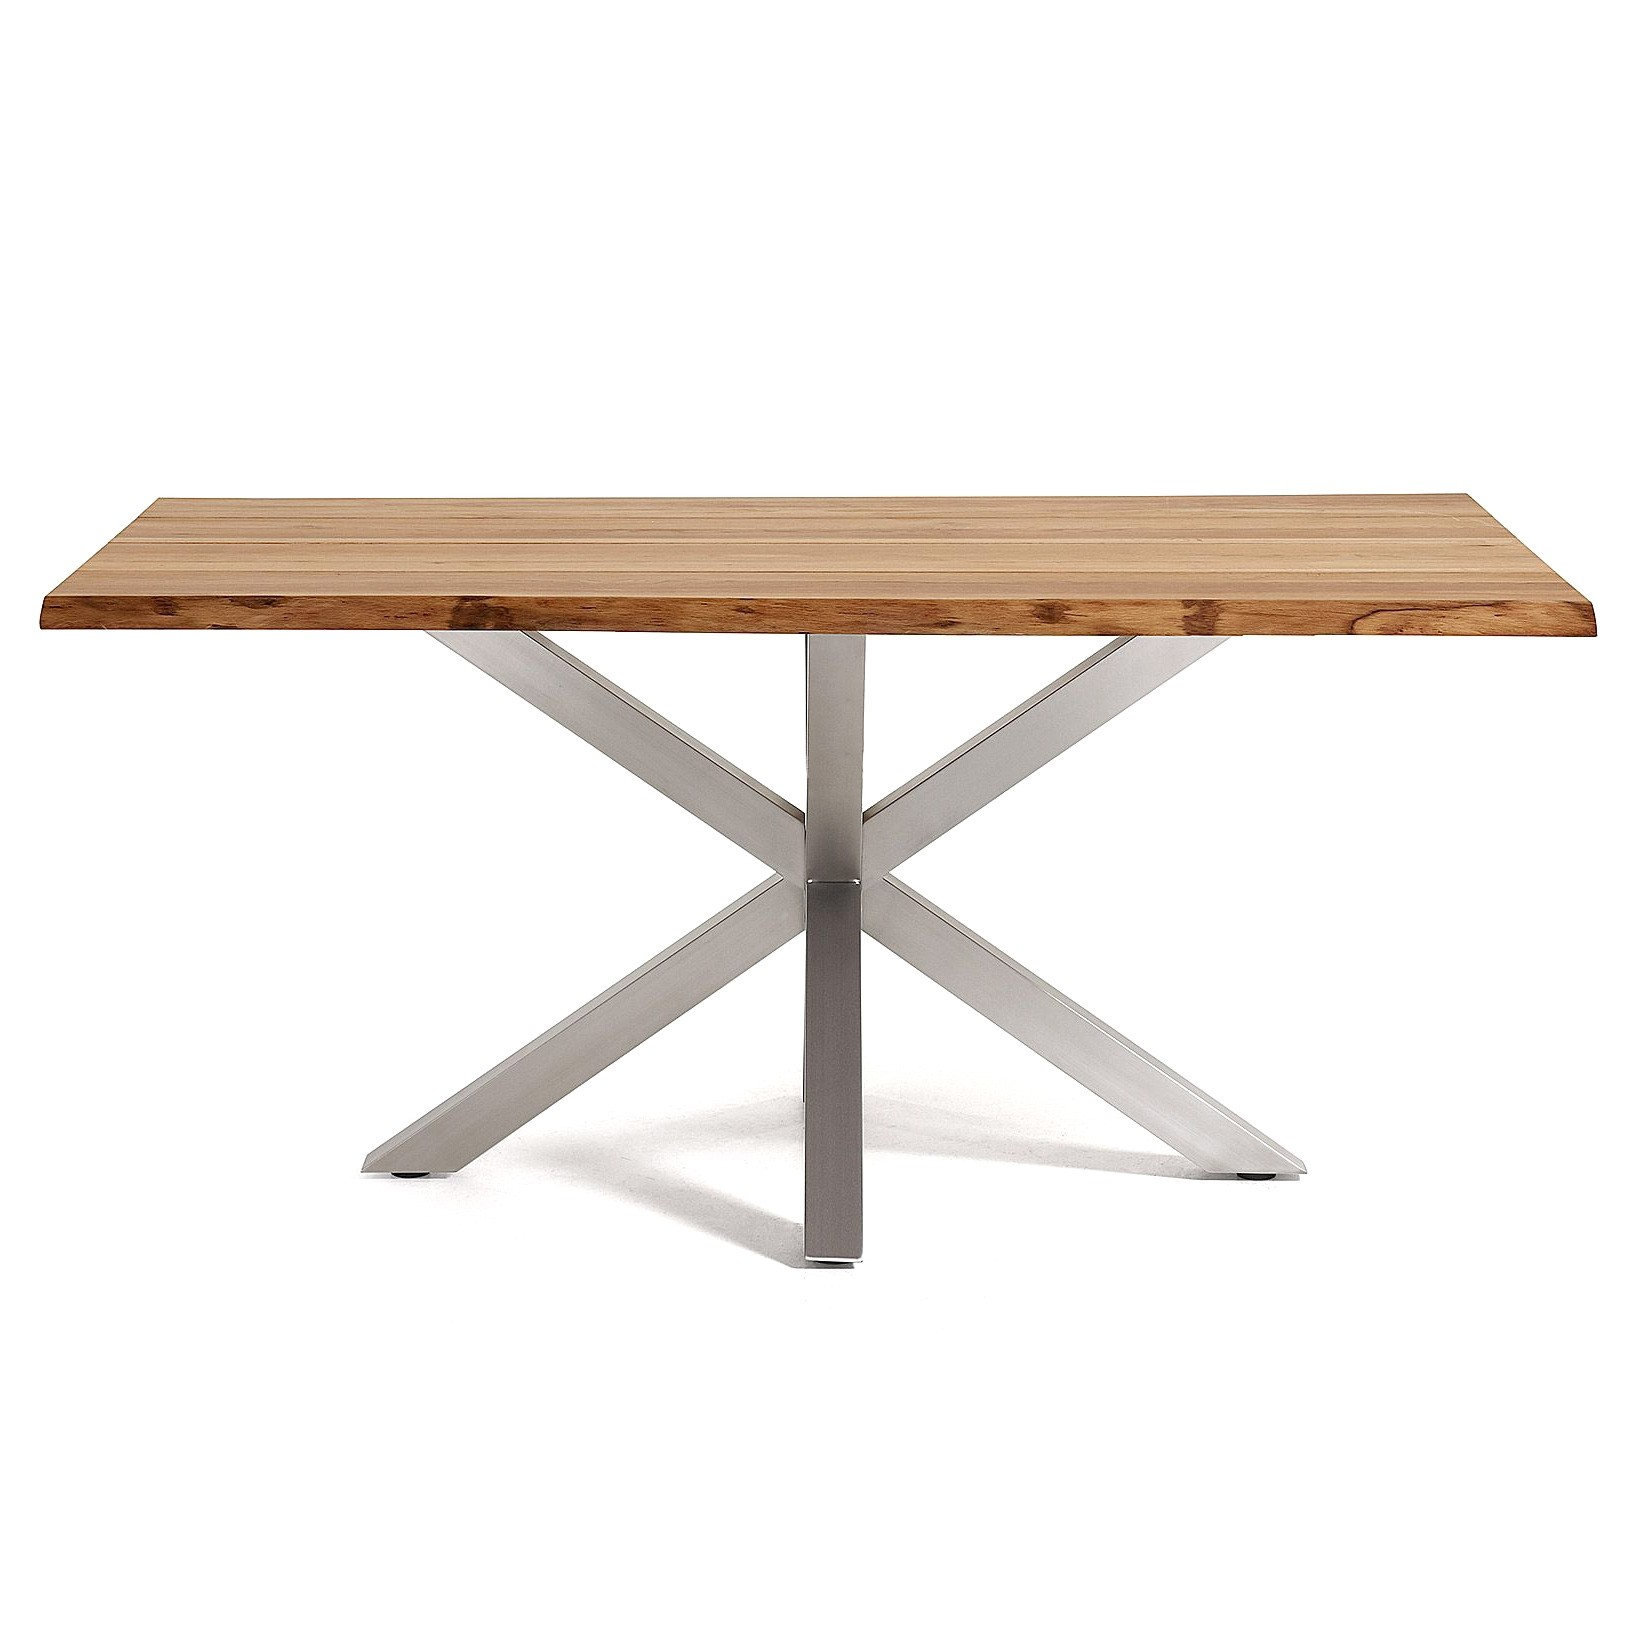 Bromley Oak Veneer & Stainless Steel Dining Table, 180cm, Natural / Silver